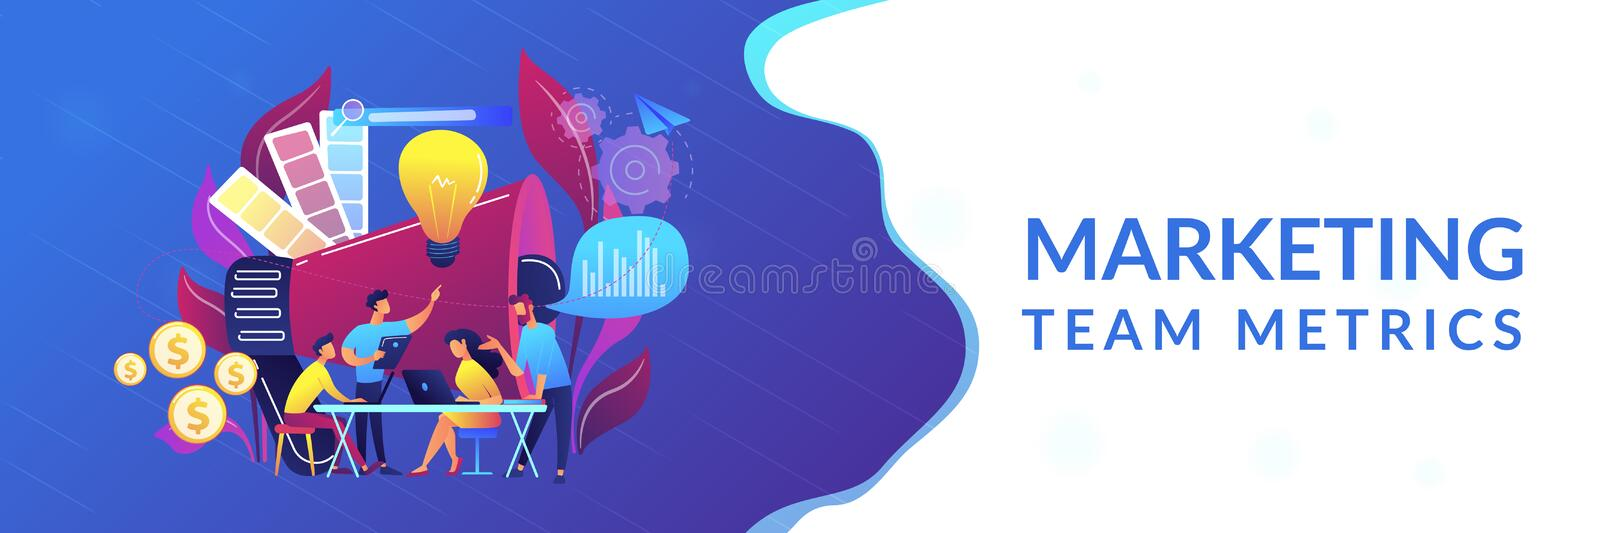 Digital marketing team concept banner header. vector illustration